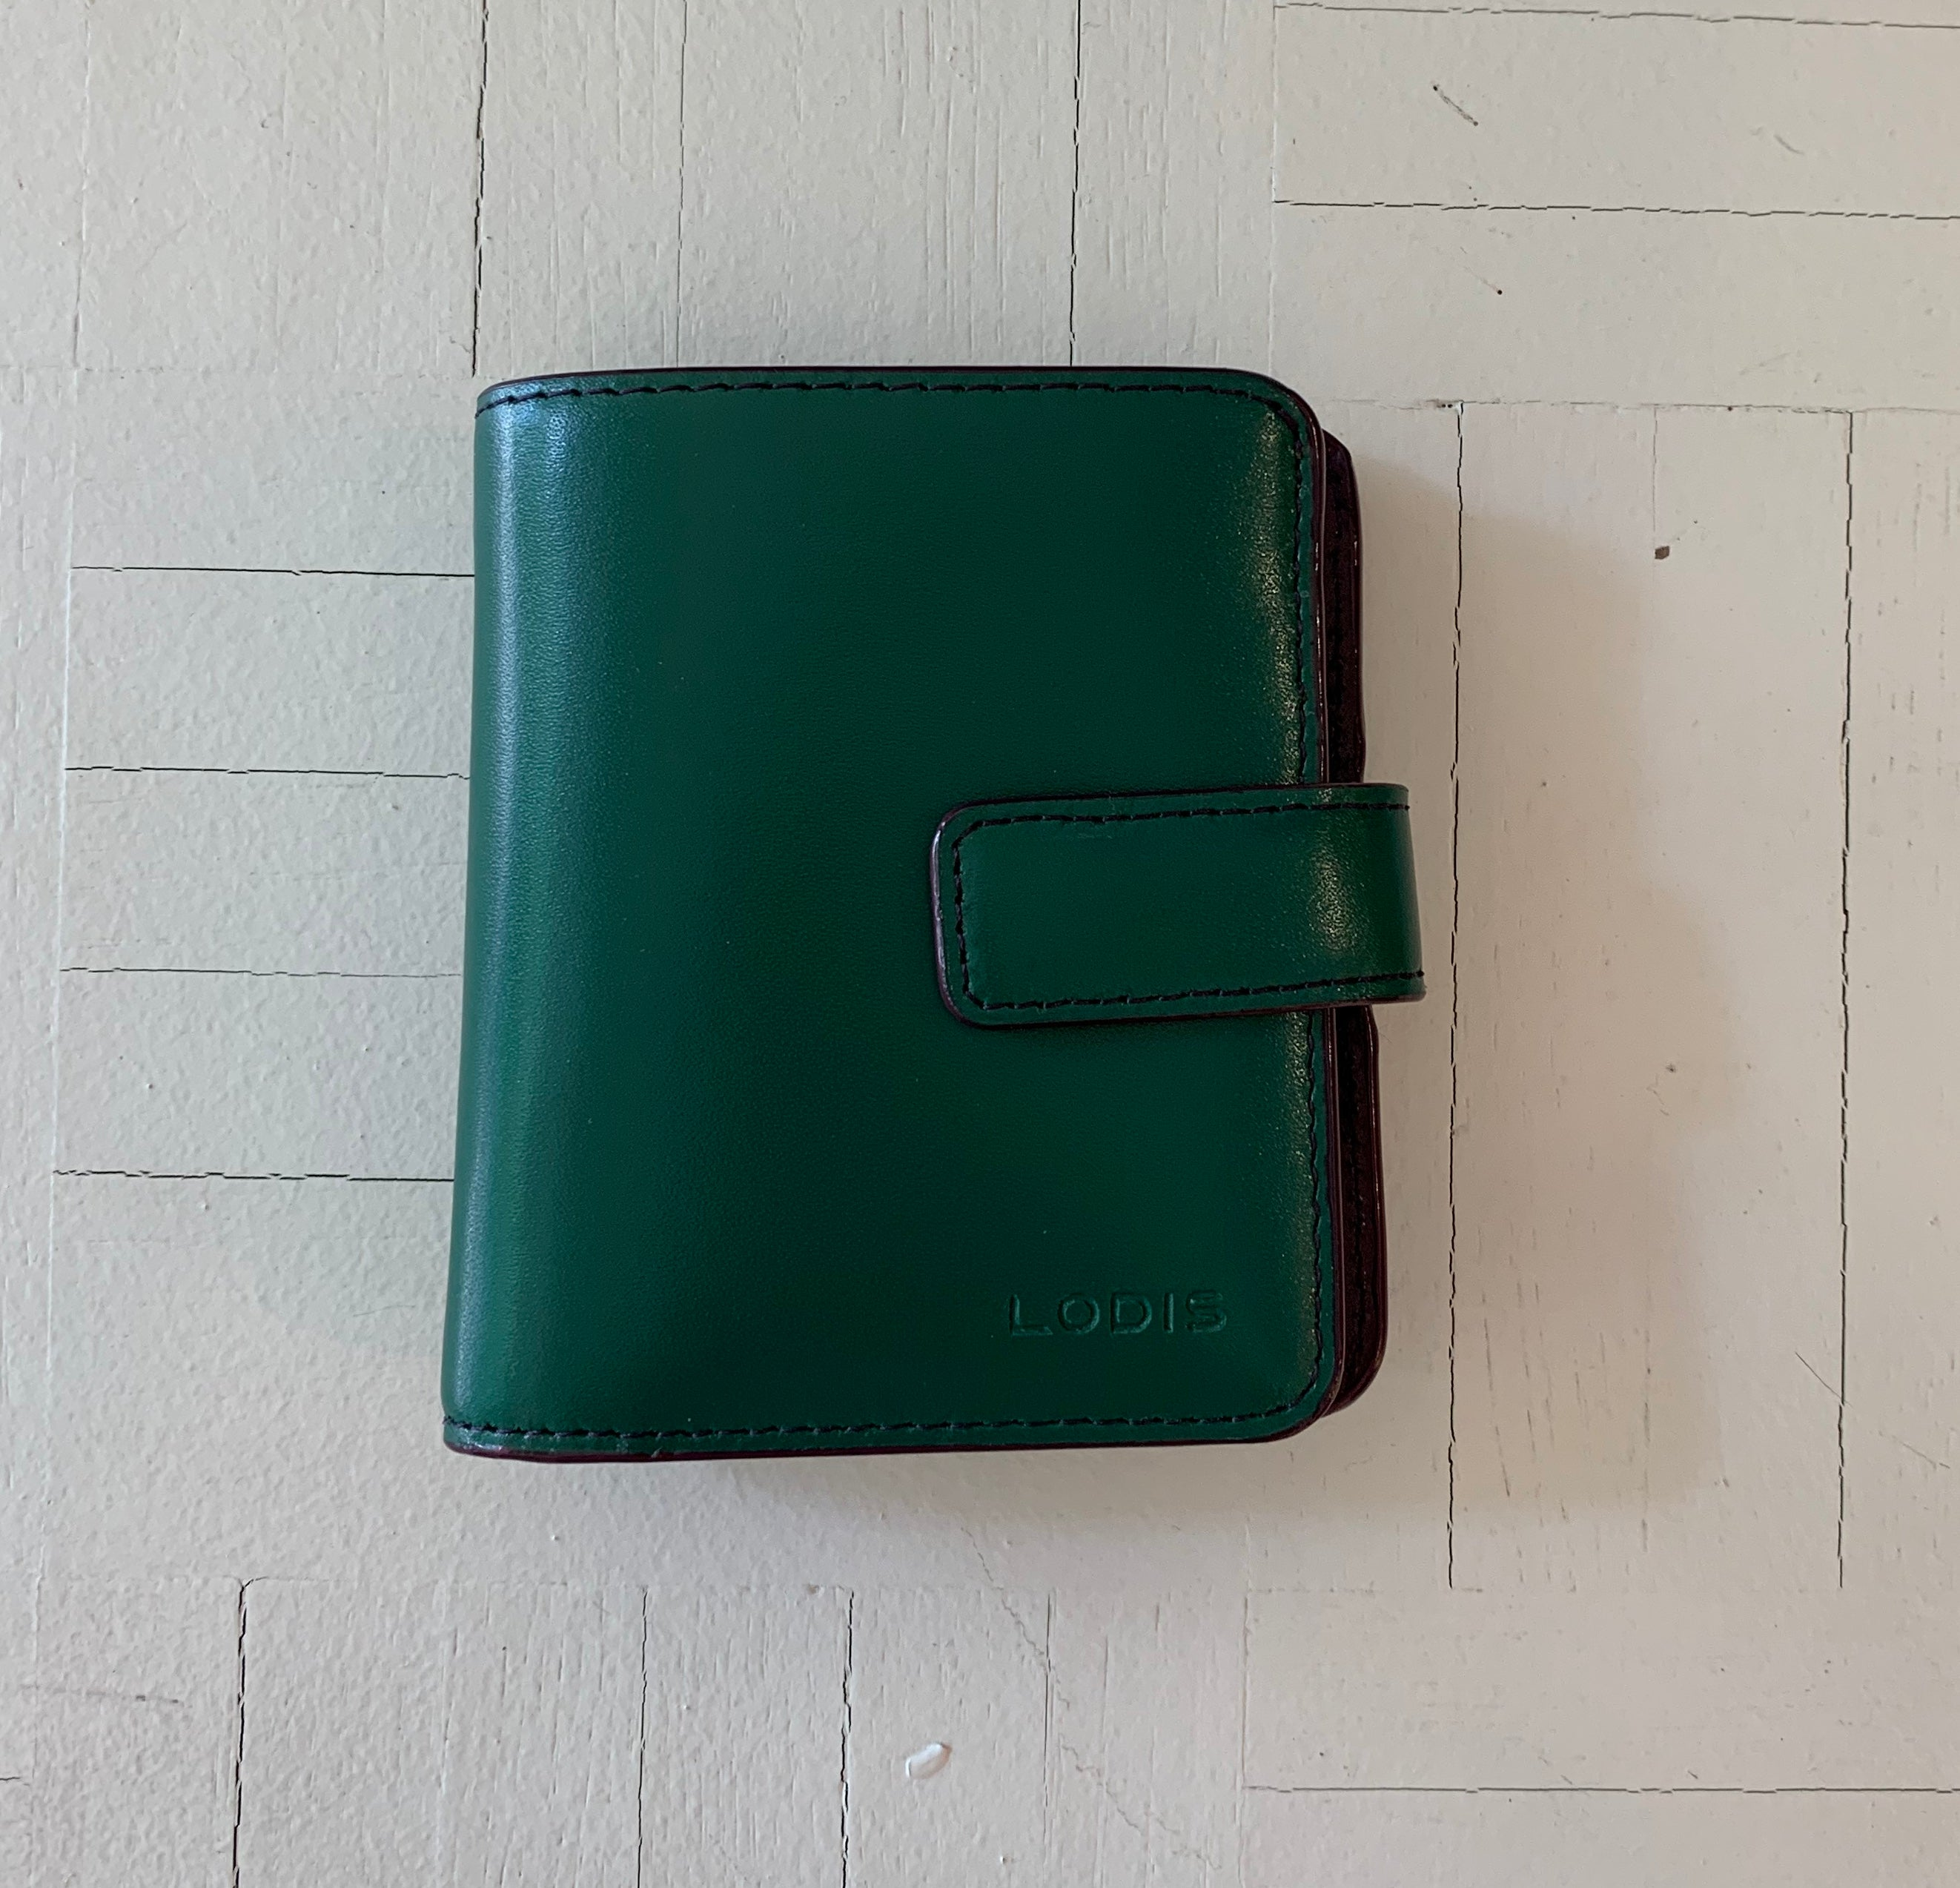 Lodis Small Snap Wallet